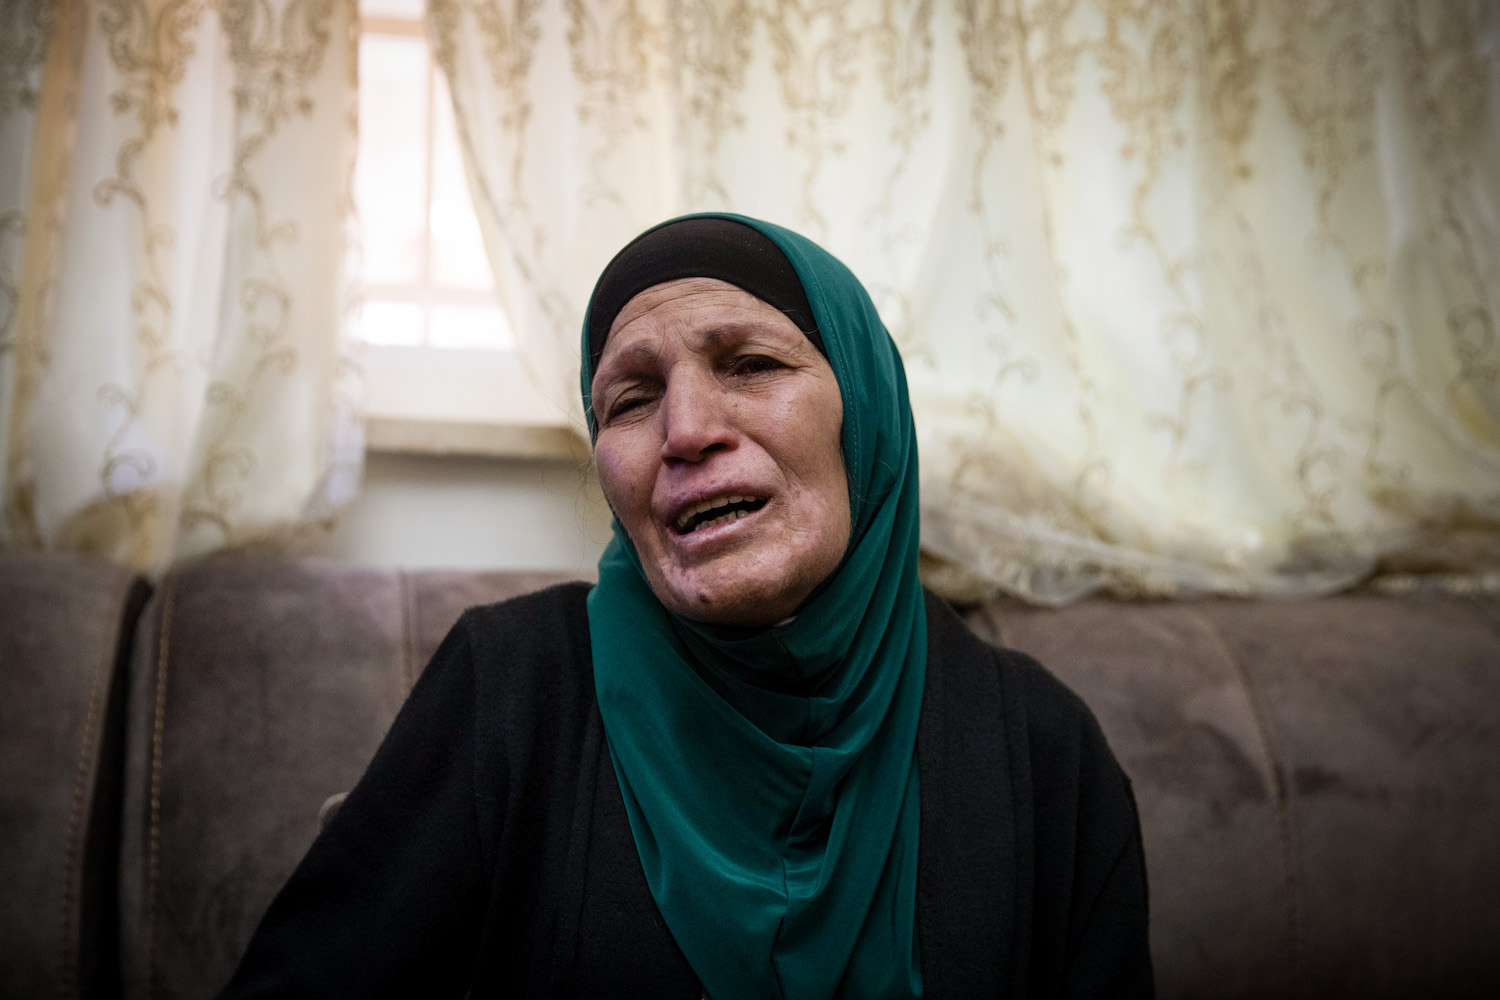 The mother of a Iyad al-Hallaq, who was shot dead by police in the Old City of Jerusalem, speaks with the media at her family home in the East Jerusalem neighborhood of Wadi Joz, May 30, 2020. (Yonatan Sindel/Flash90)